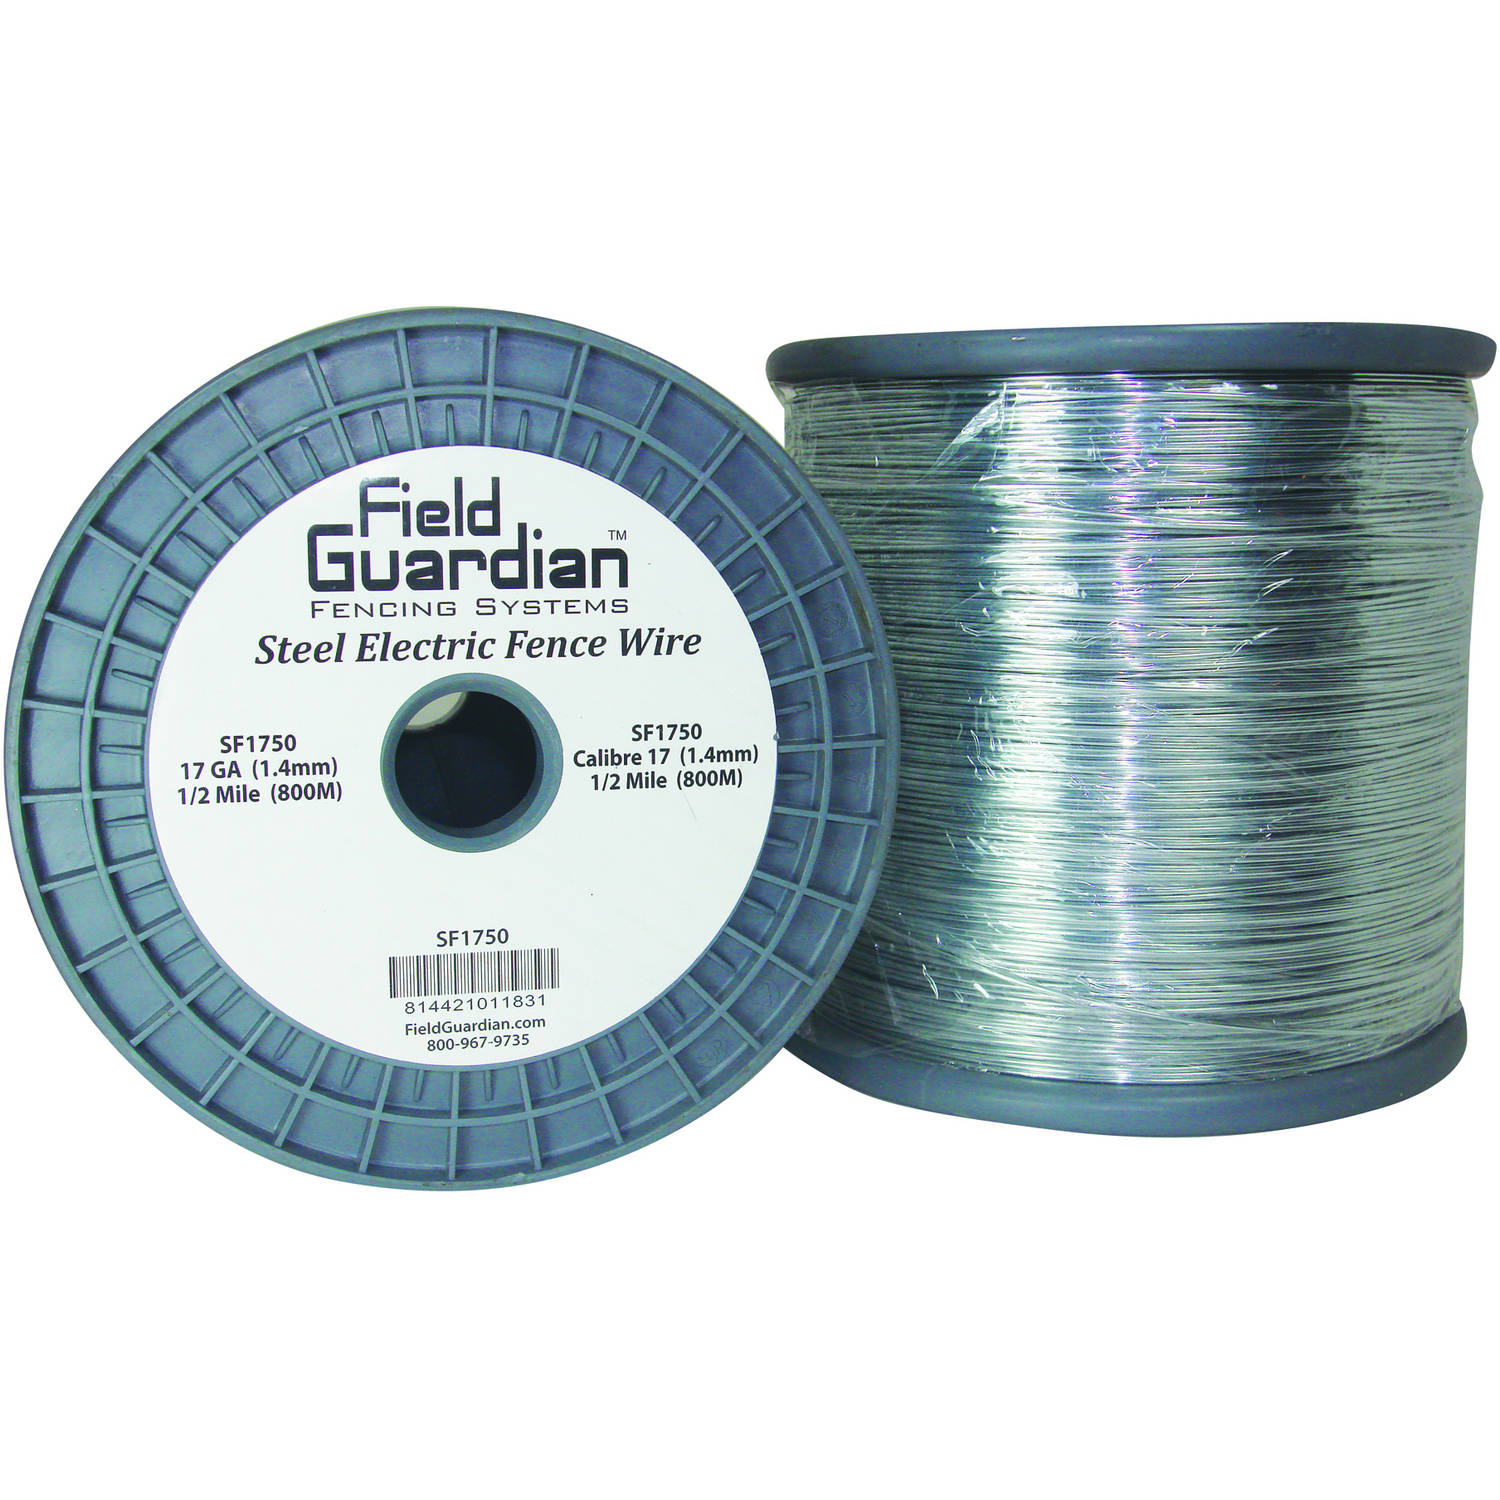 Field Guardian 17 GA. Galvanized Steel Wire, 1/2 Mile